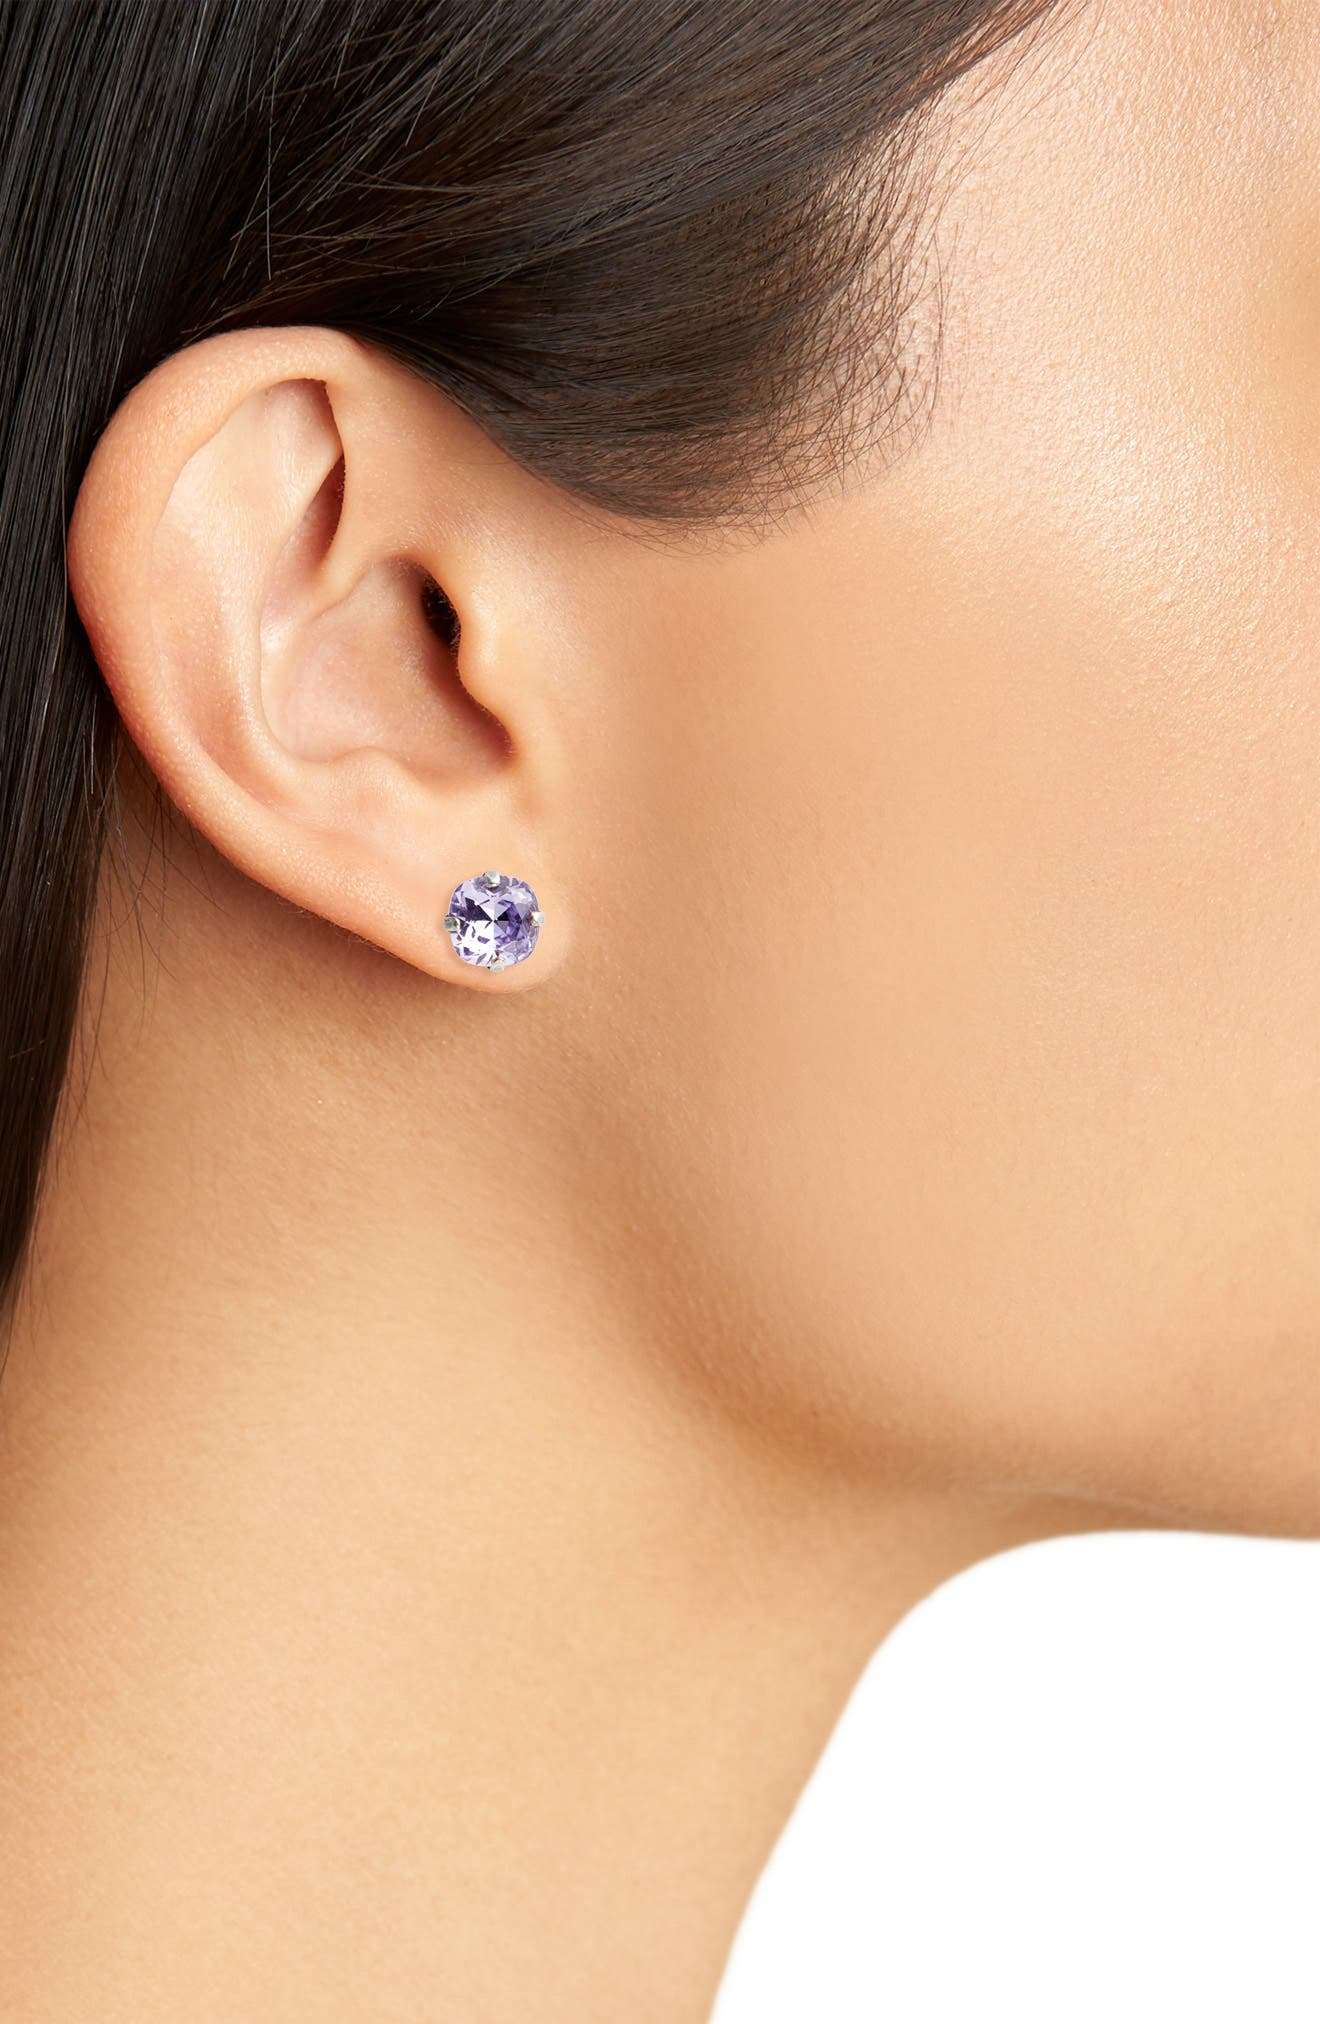 One & Only Crystal Earrings,                             Alternate thumbnail 2, color,                             500